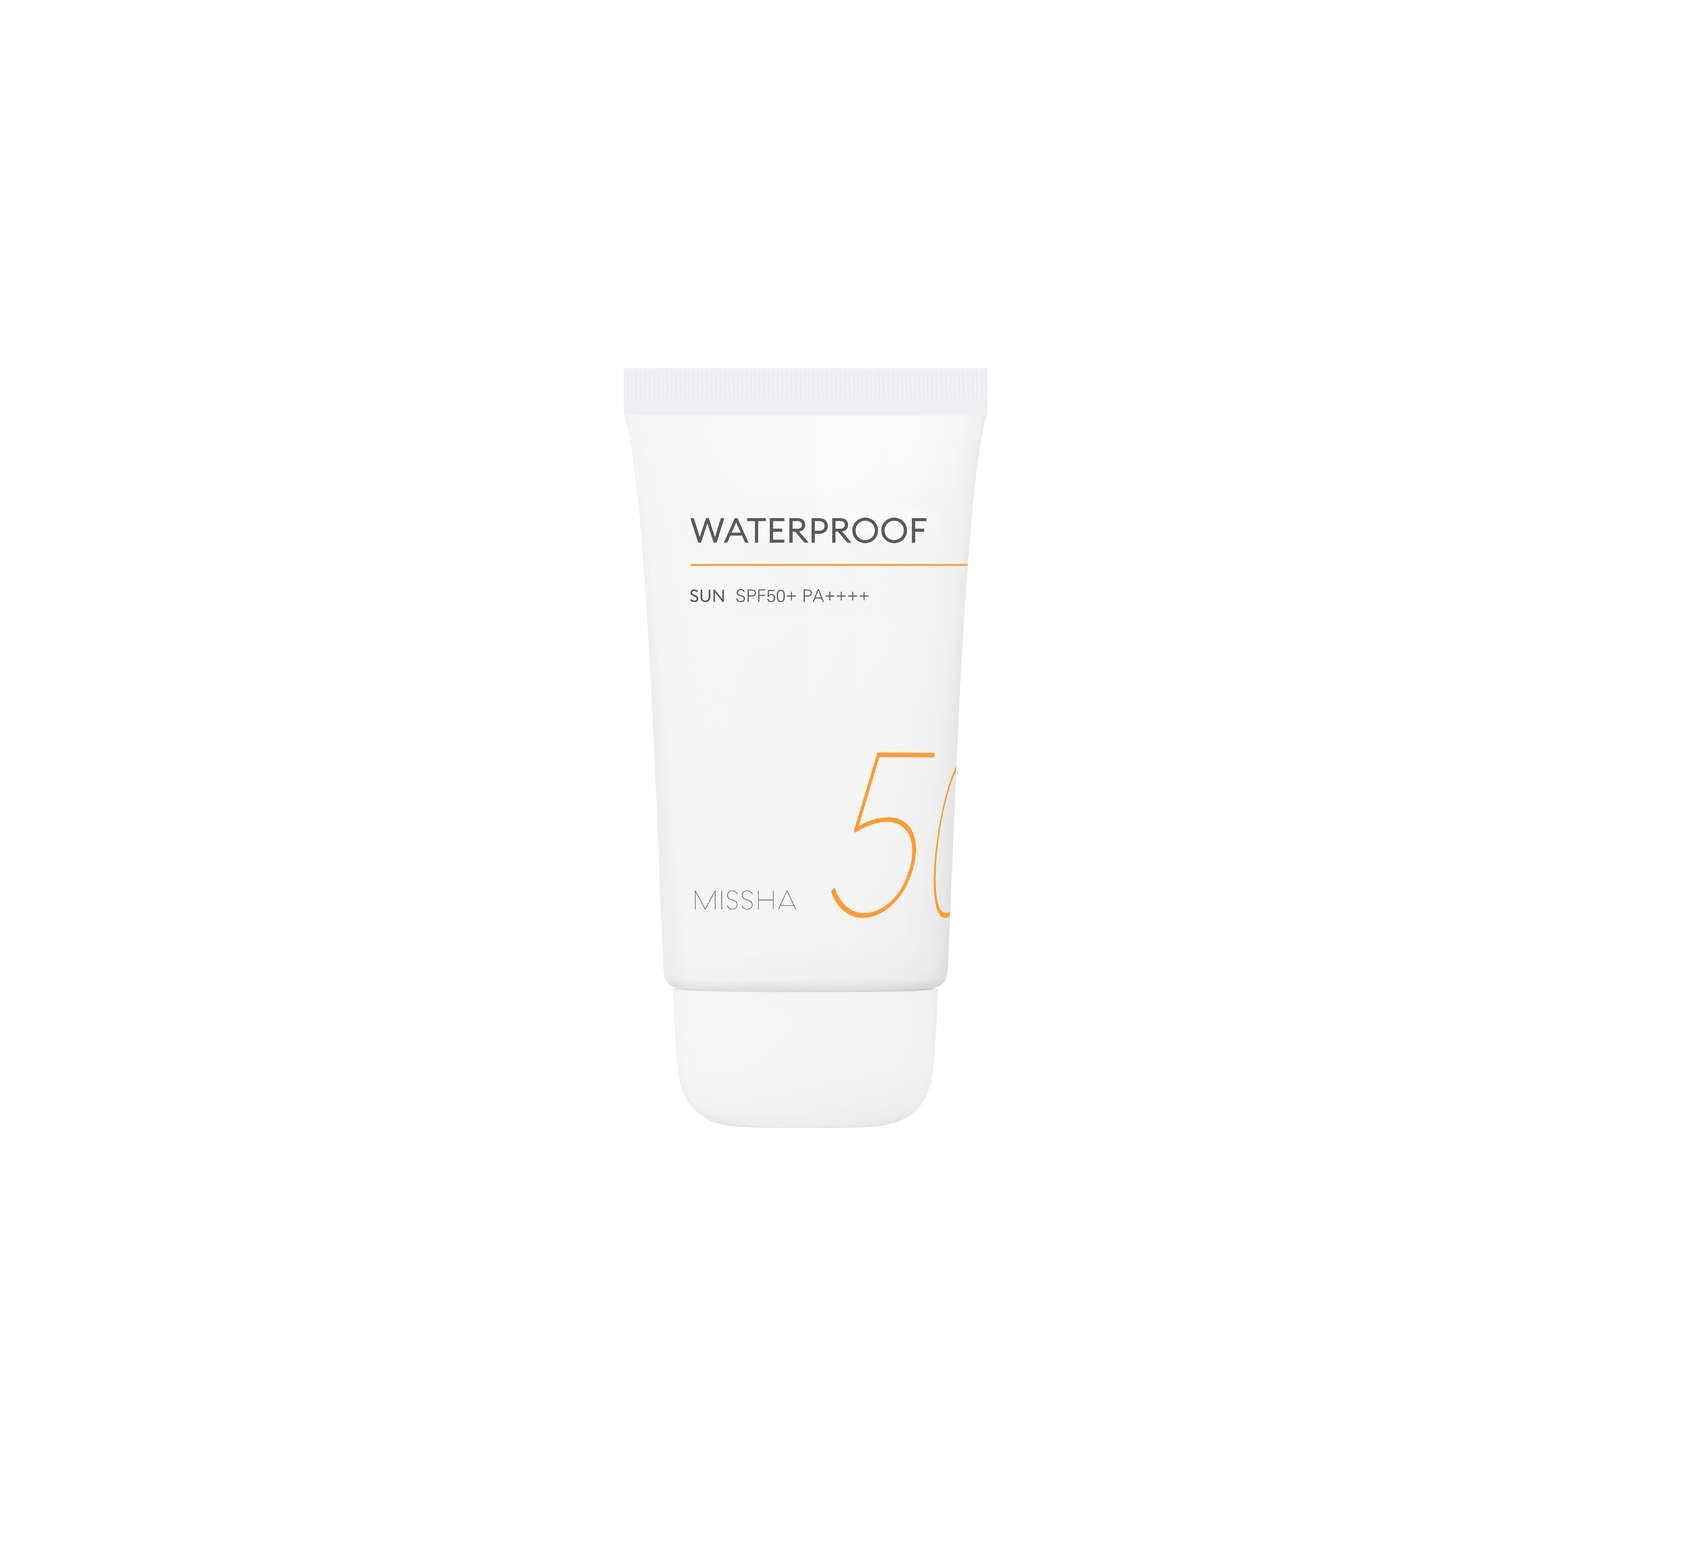 MISSHA All-Around Safe Block Waterproof Sun SPF 50 Miss Eco